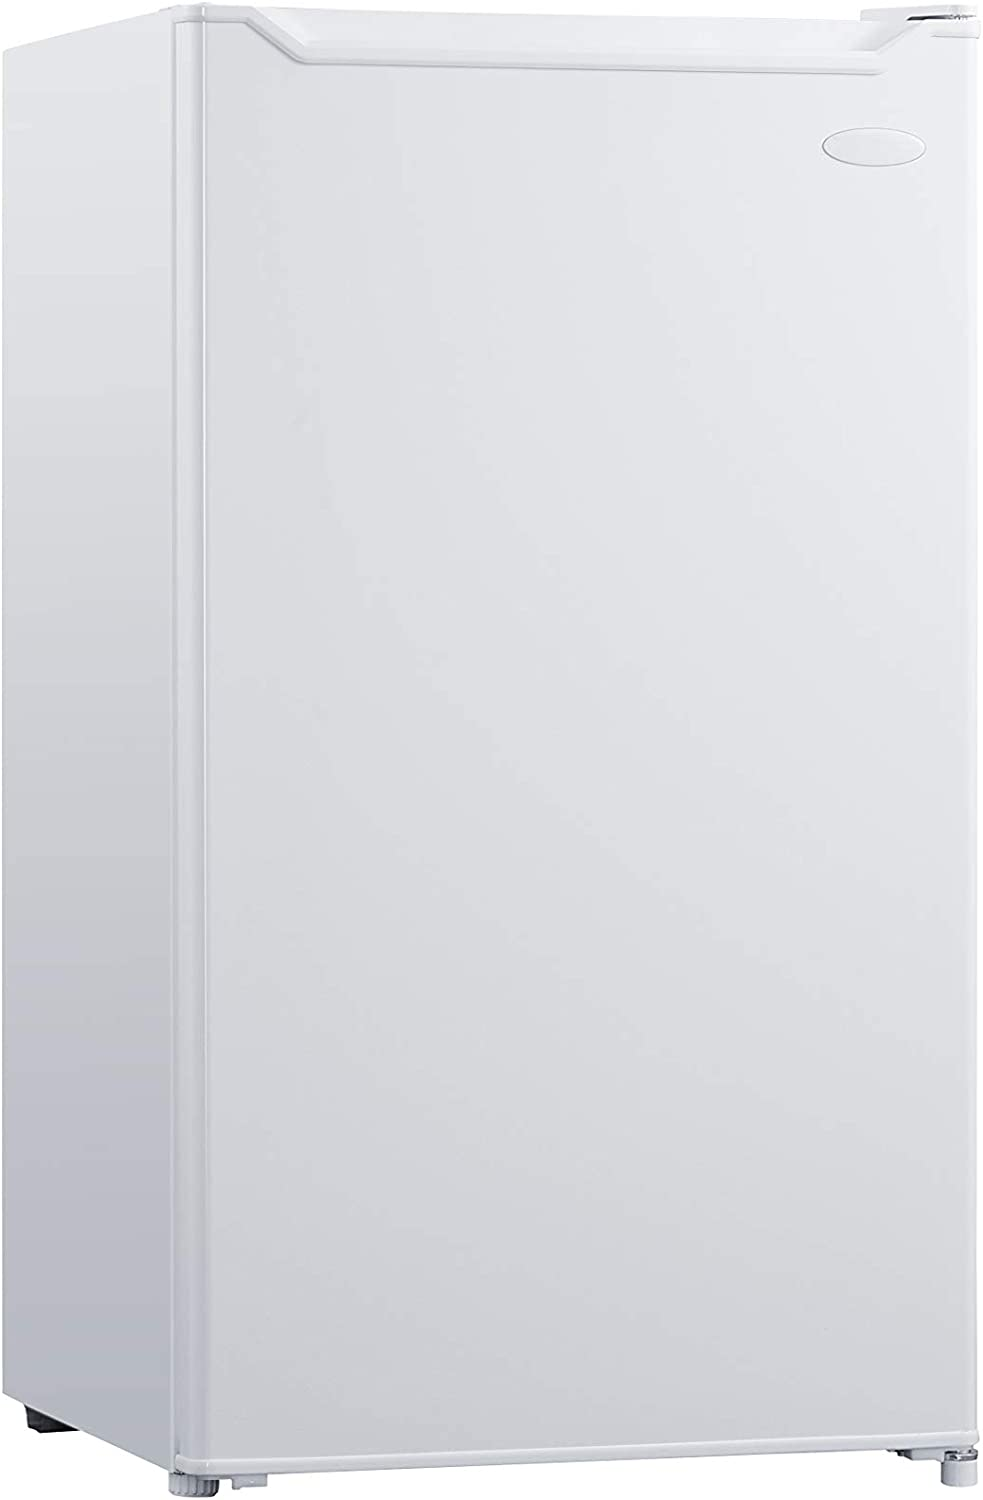 Danby White cu. ft. Compact Refrigerator DCR033B1WM 3.3 Cu.Ft. Mini Fridge with Top Chiller Bar, Living Room, Den, Basement, Kitchen, Dorm